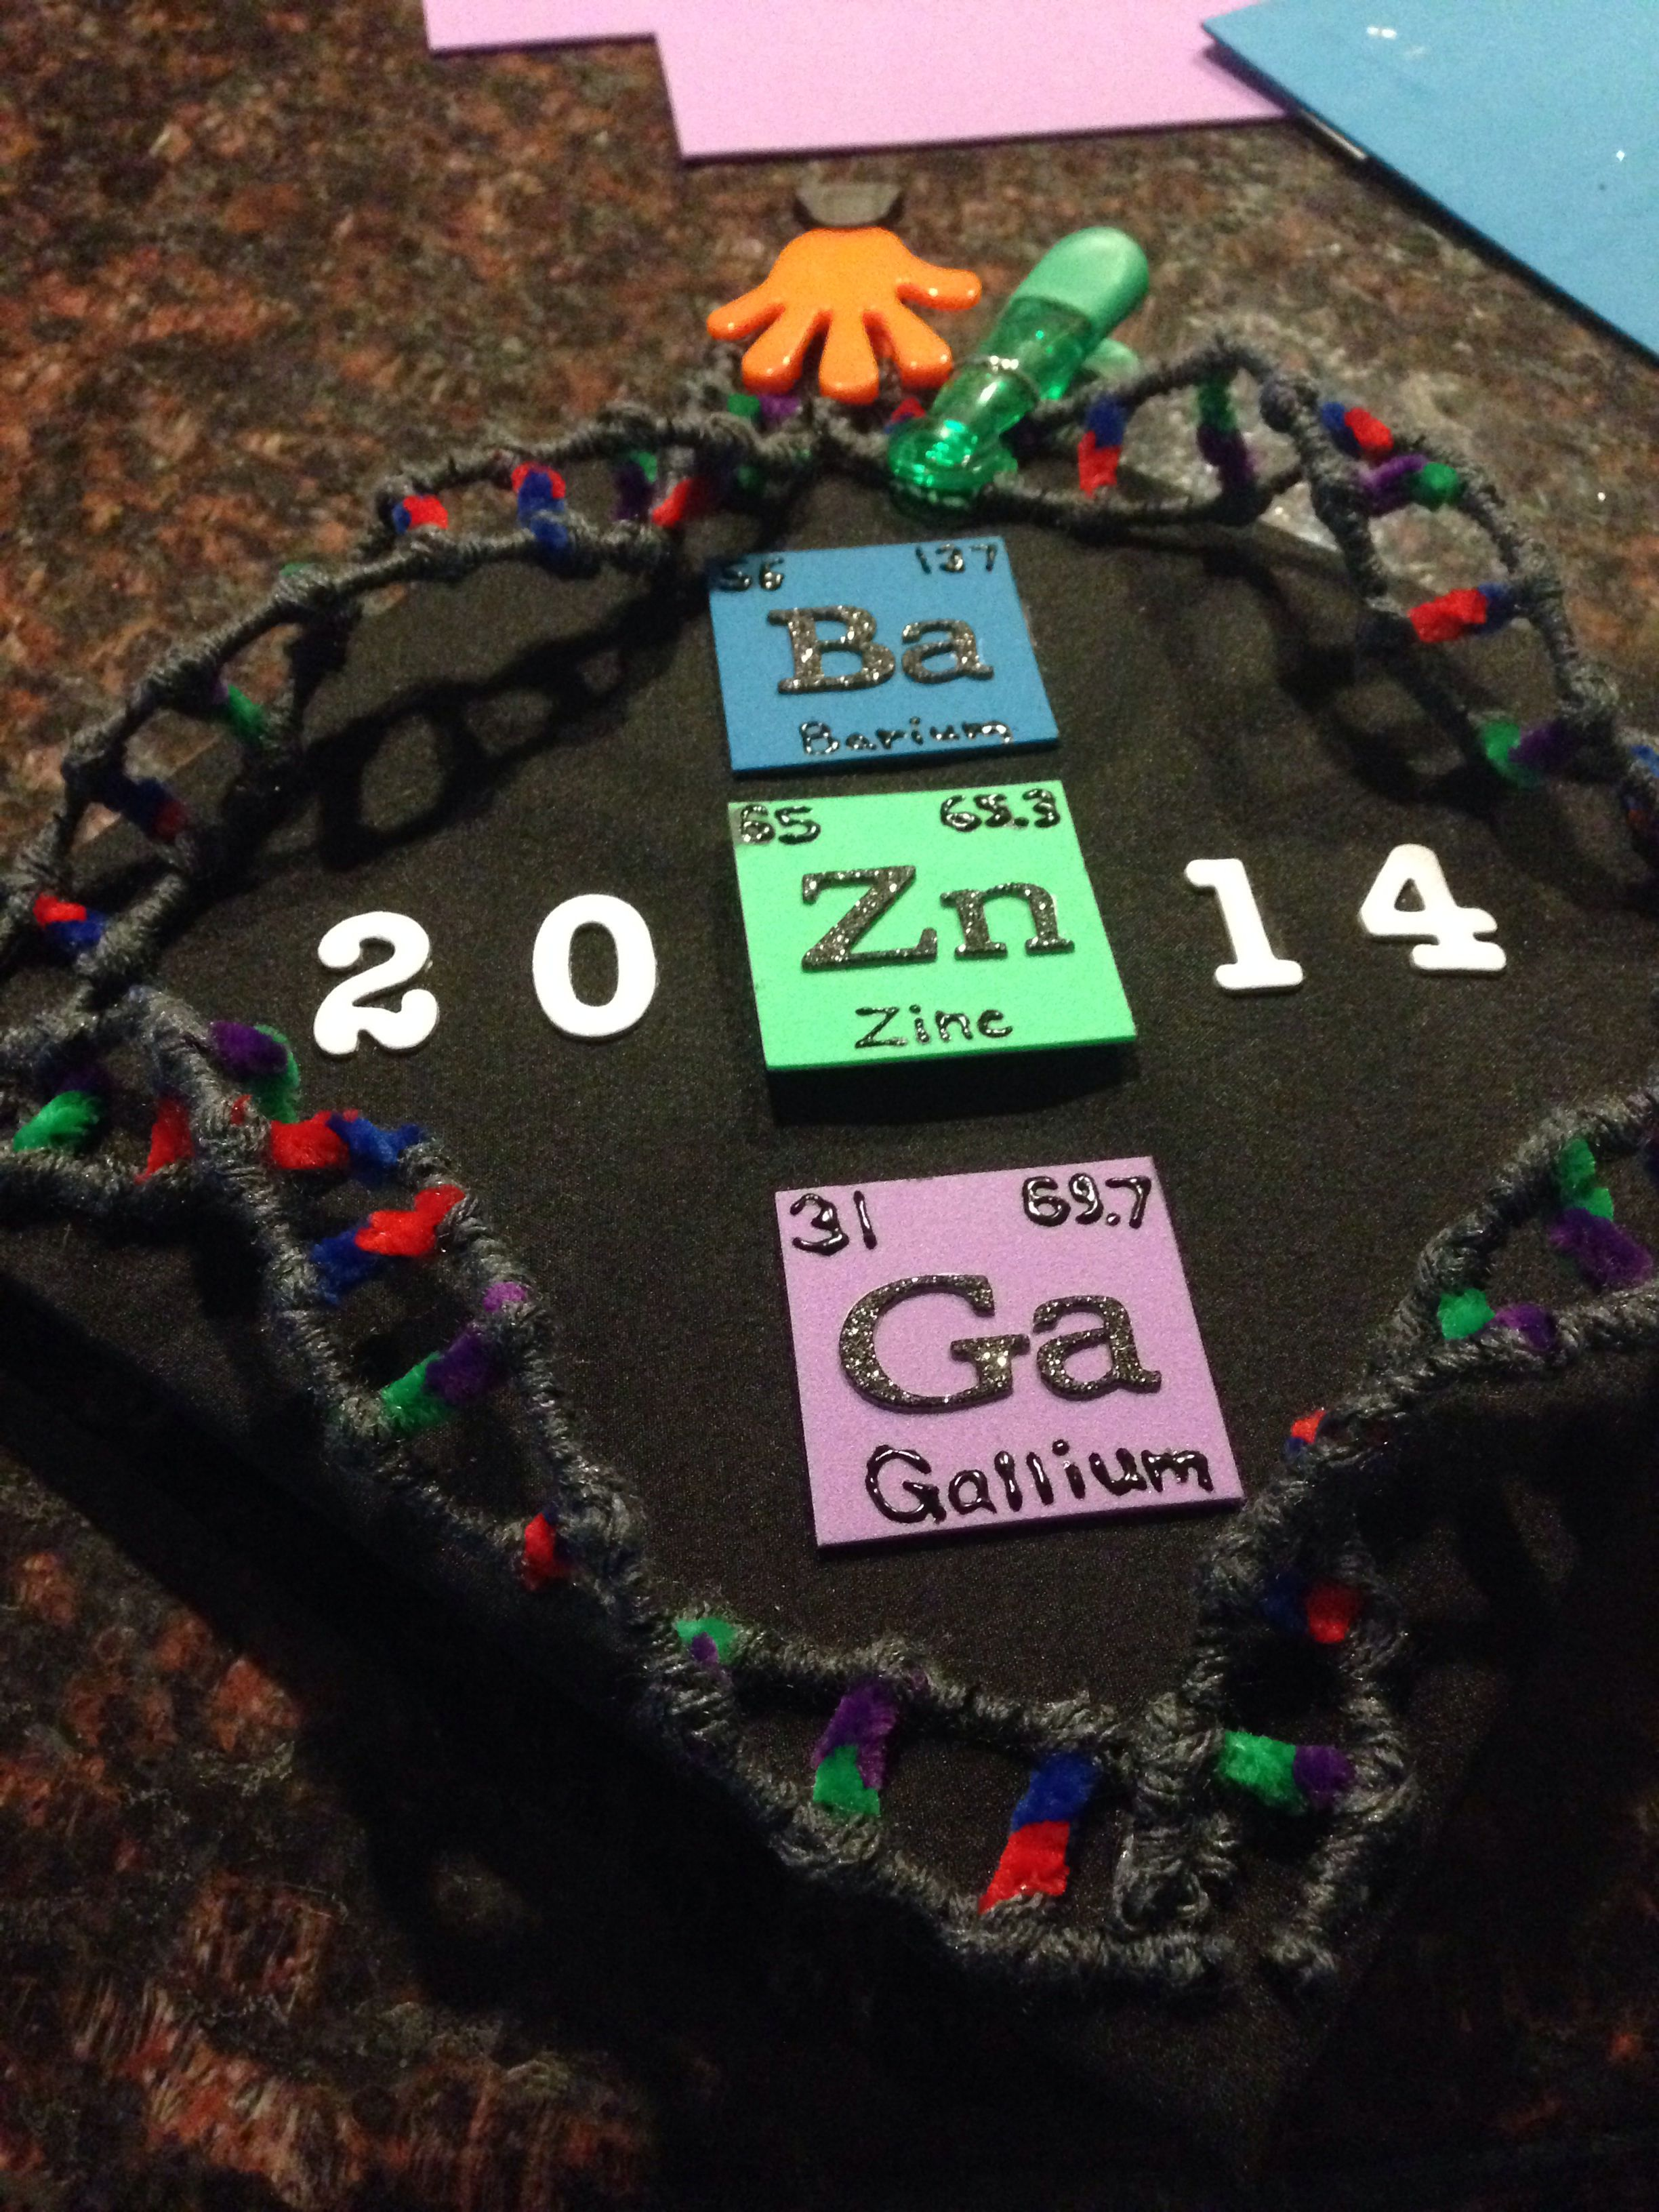 My Biology Major Chemistry Minor Graduation Cap Bazinga